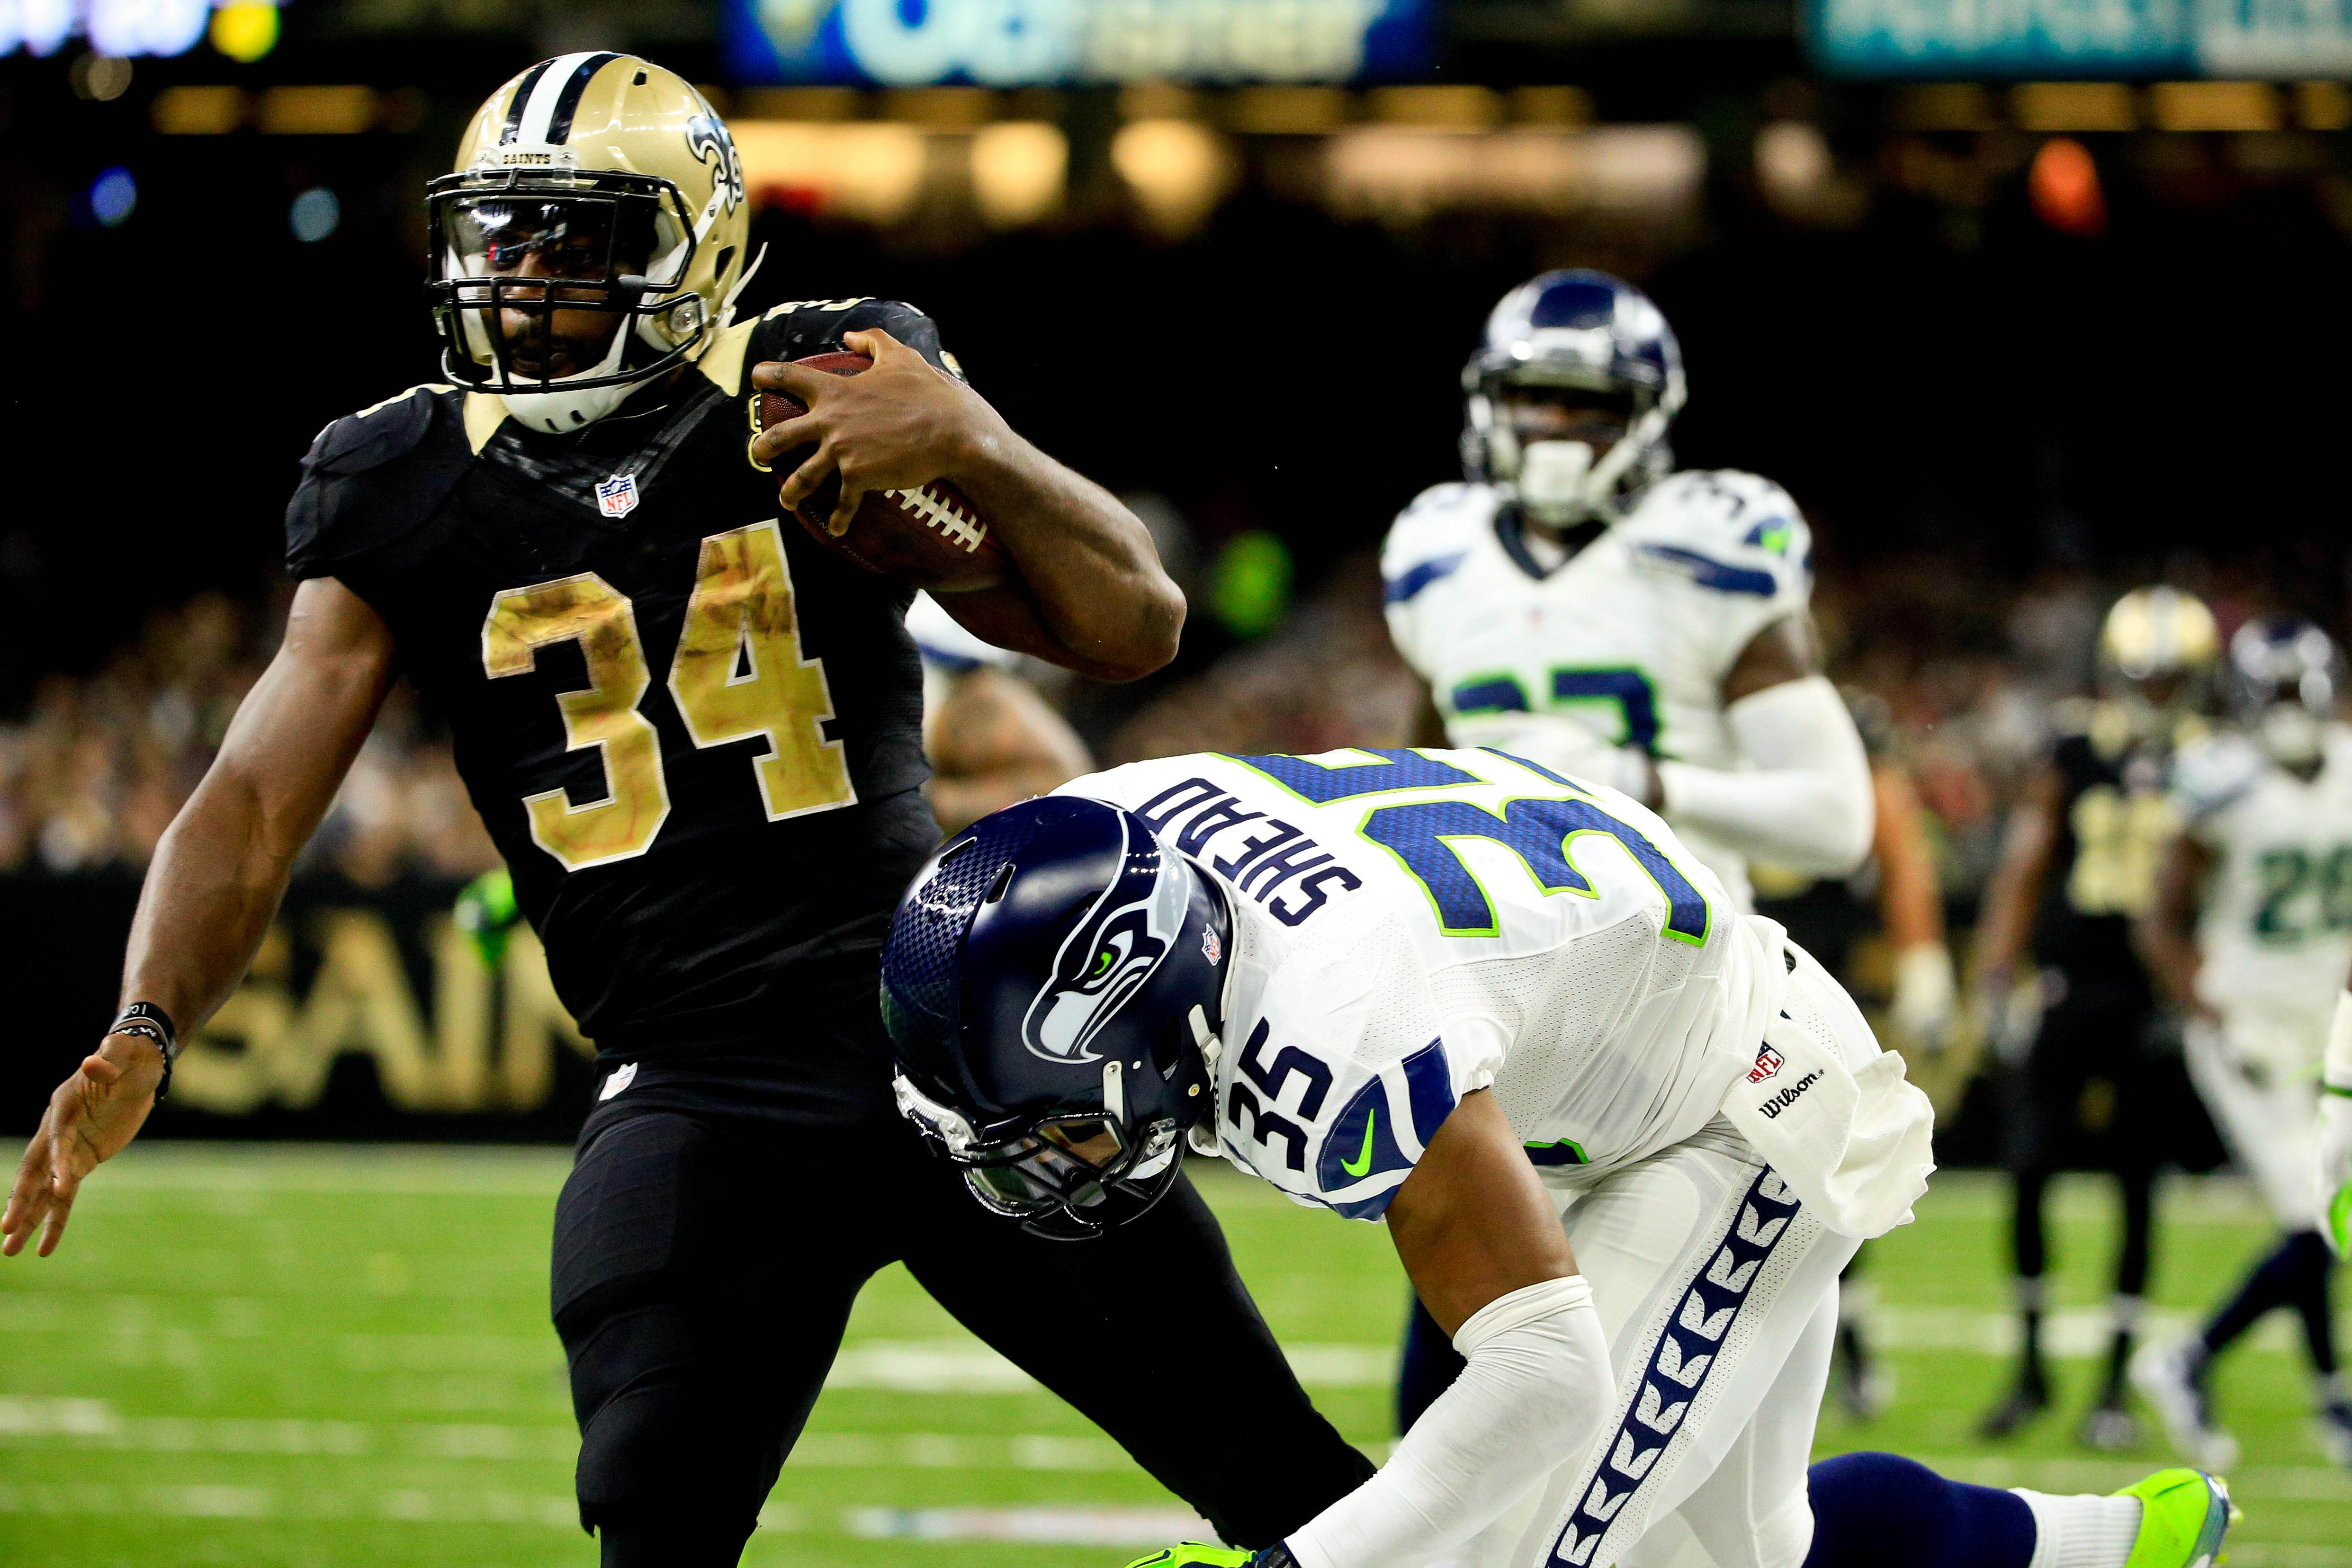 NFL: Seattle Seahawks at New Orleans Saints